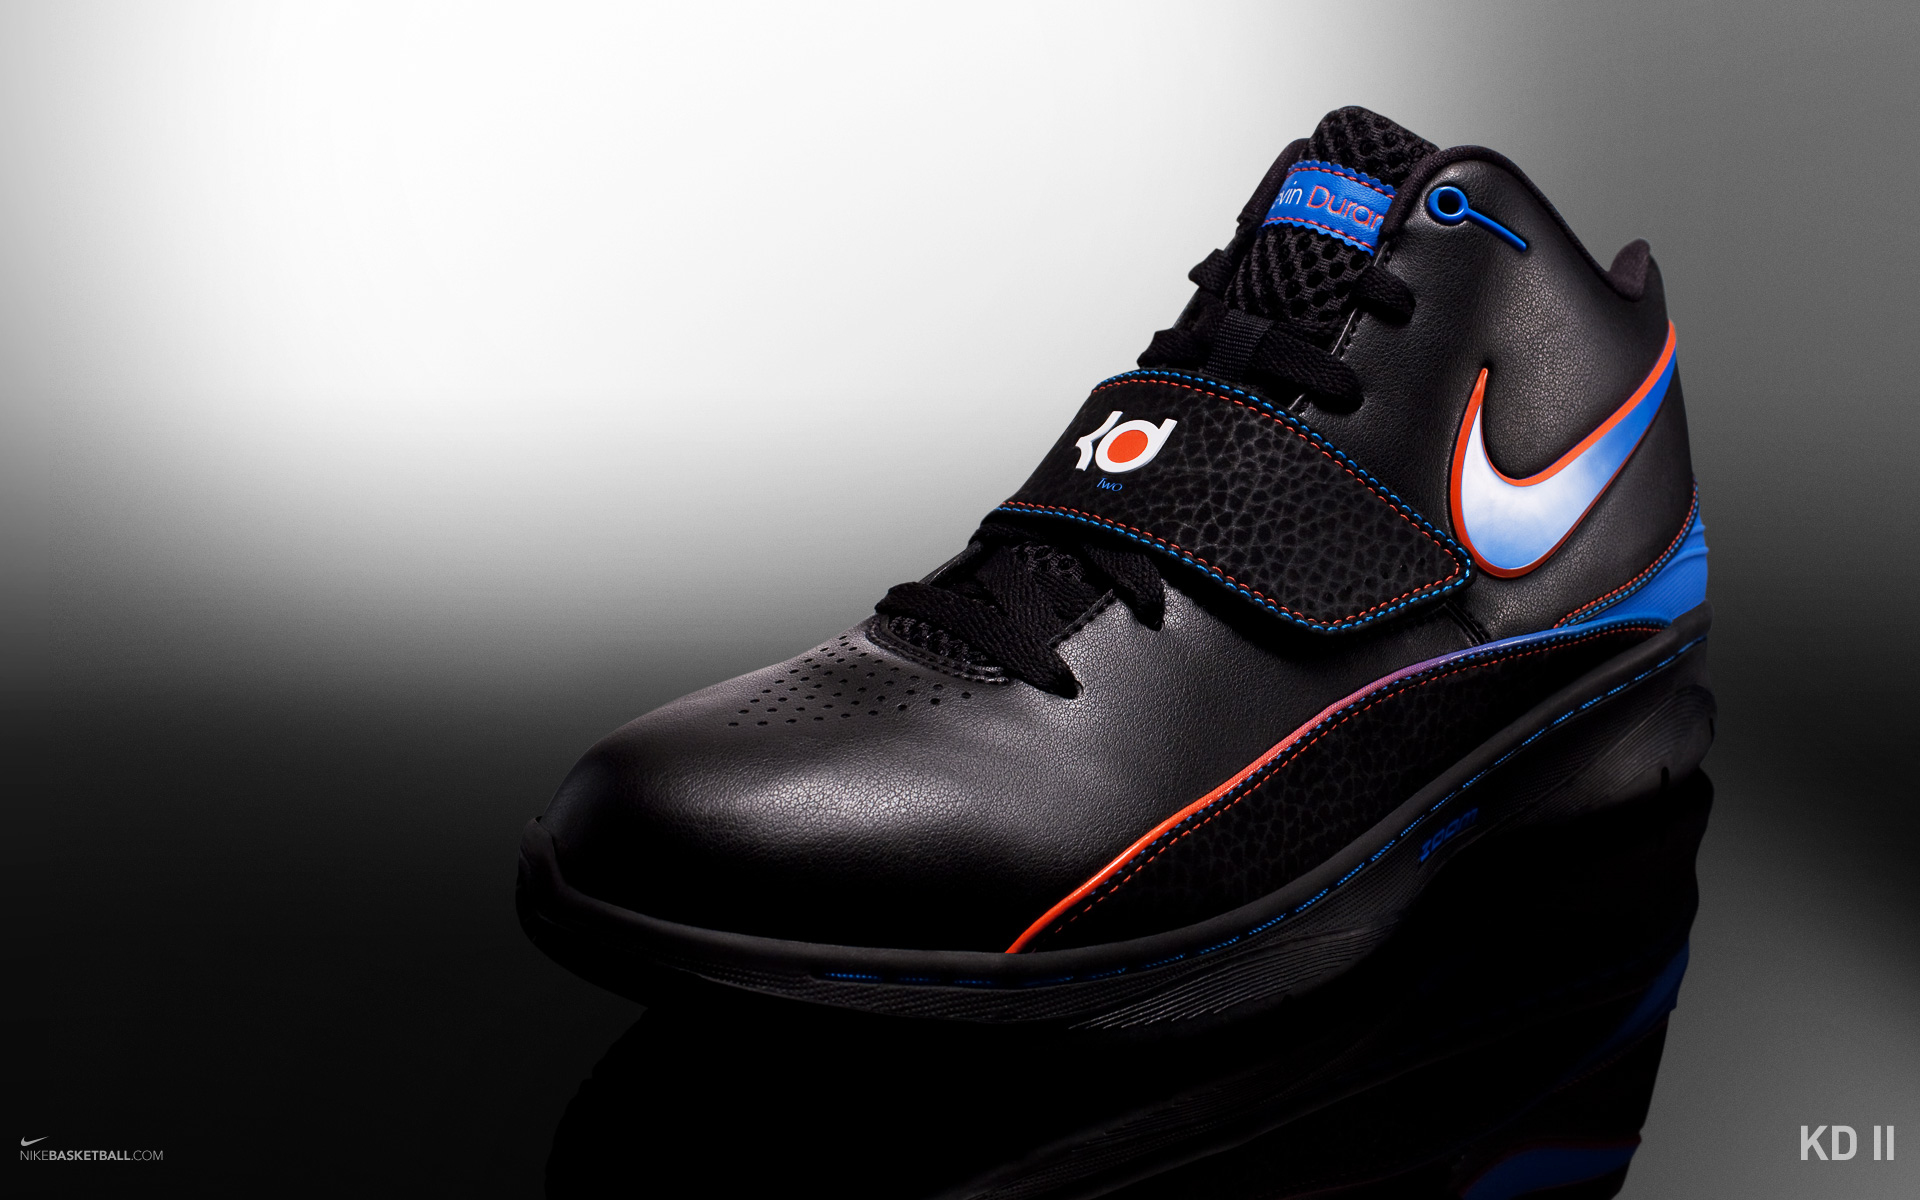 KD 2 Shoes http://blog.sneakersandshoes.com/2010/03/31/the-nike-kd-ii-is-interesting/nike-kd-ii-2/